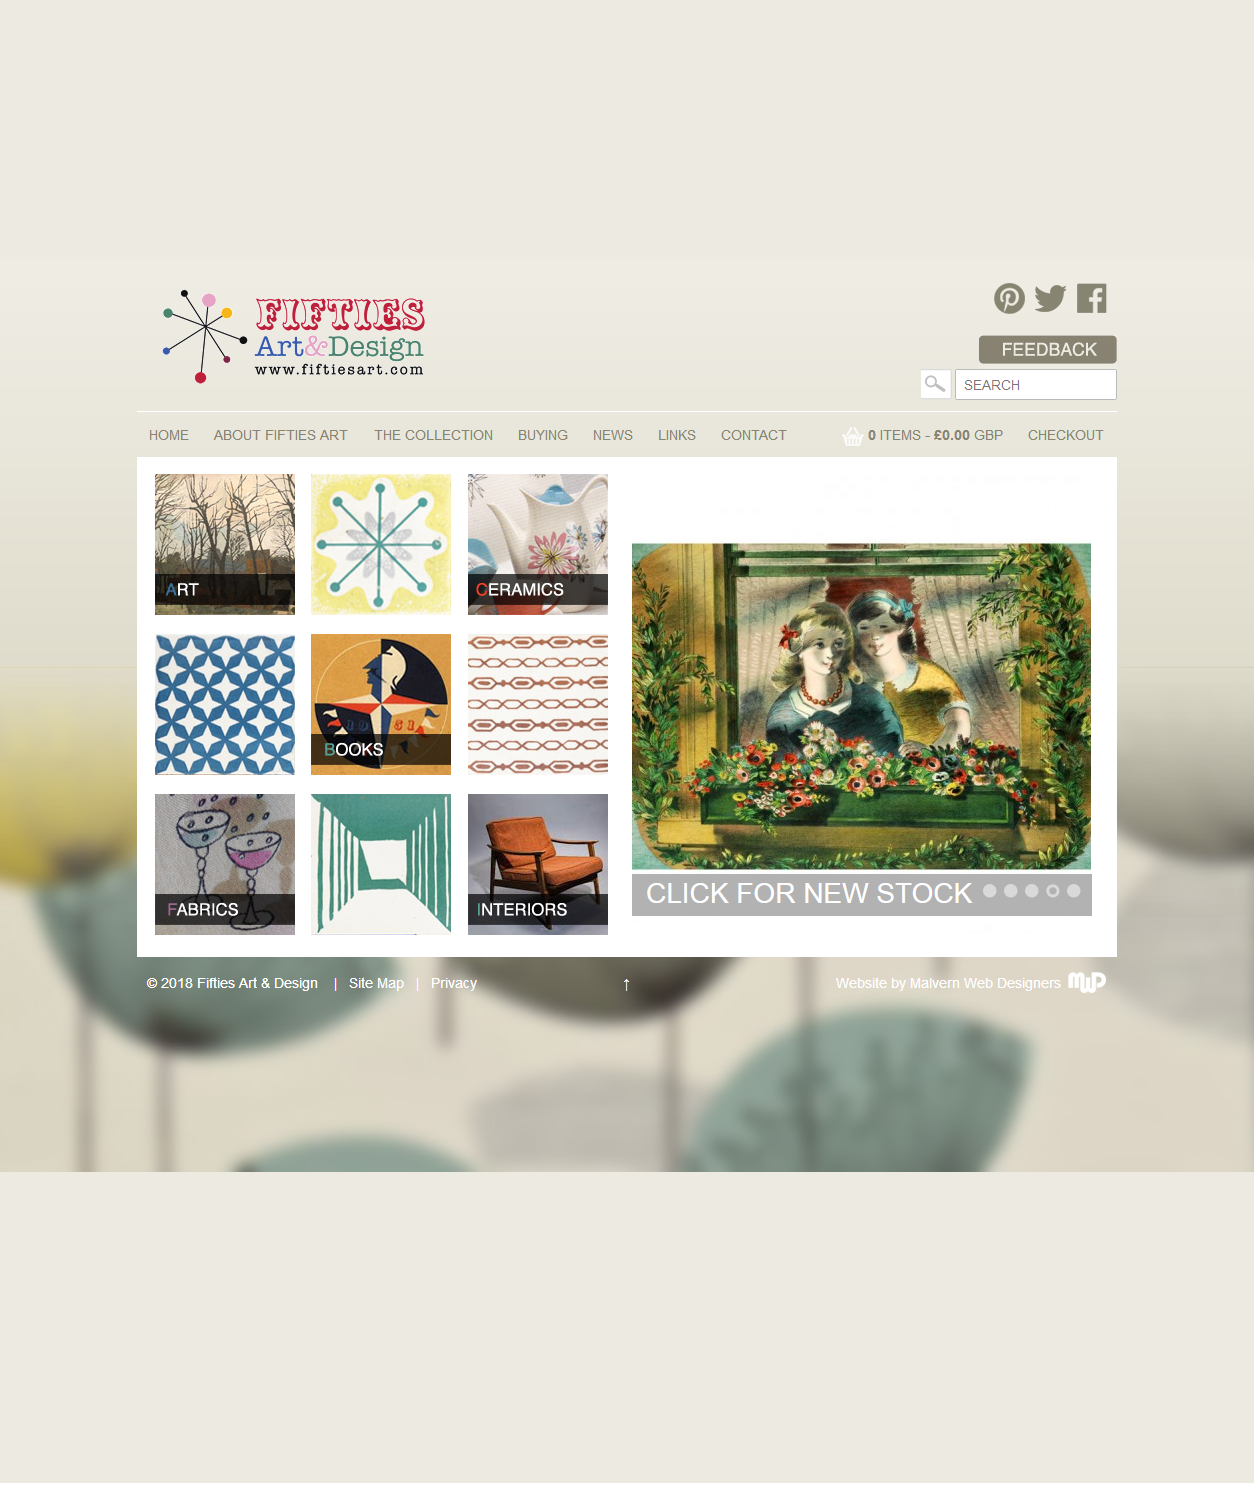 FiftiesArt.com Ecommerce Website Homepage